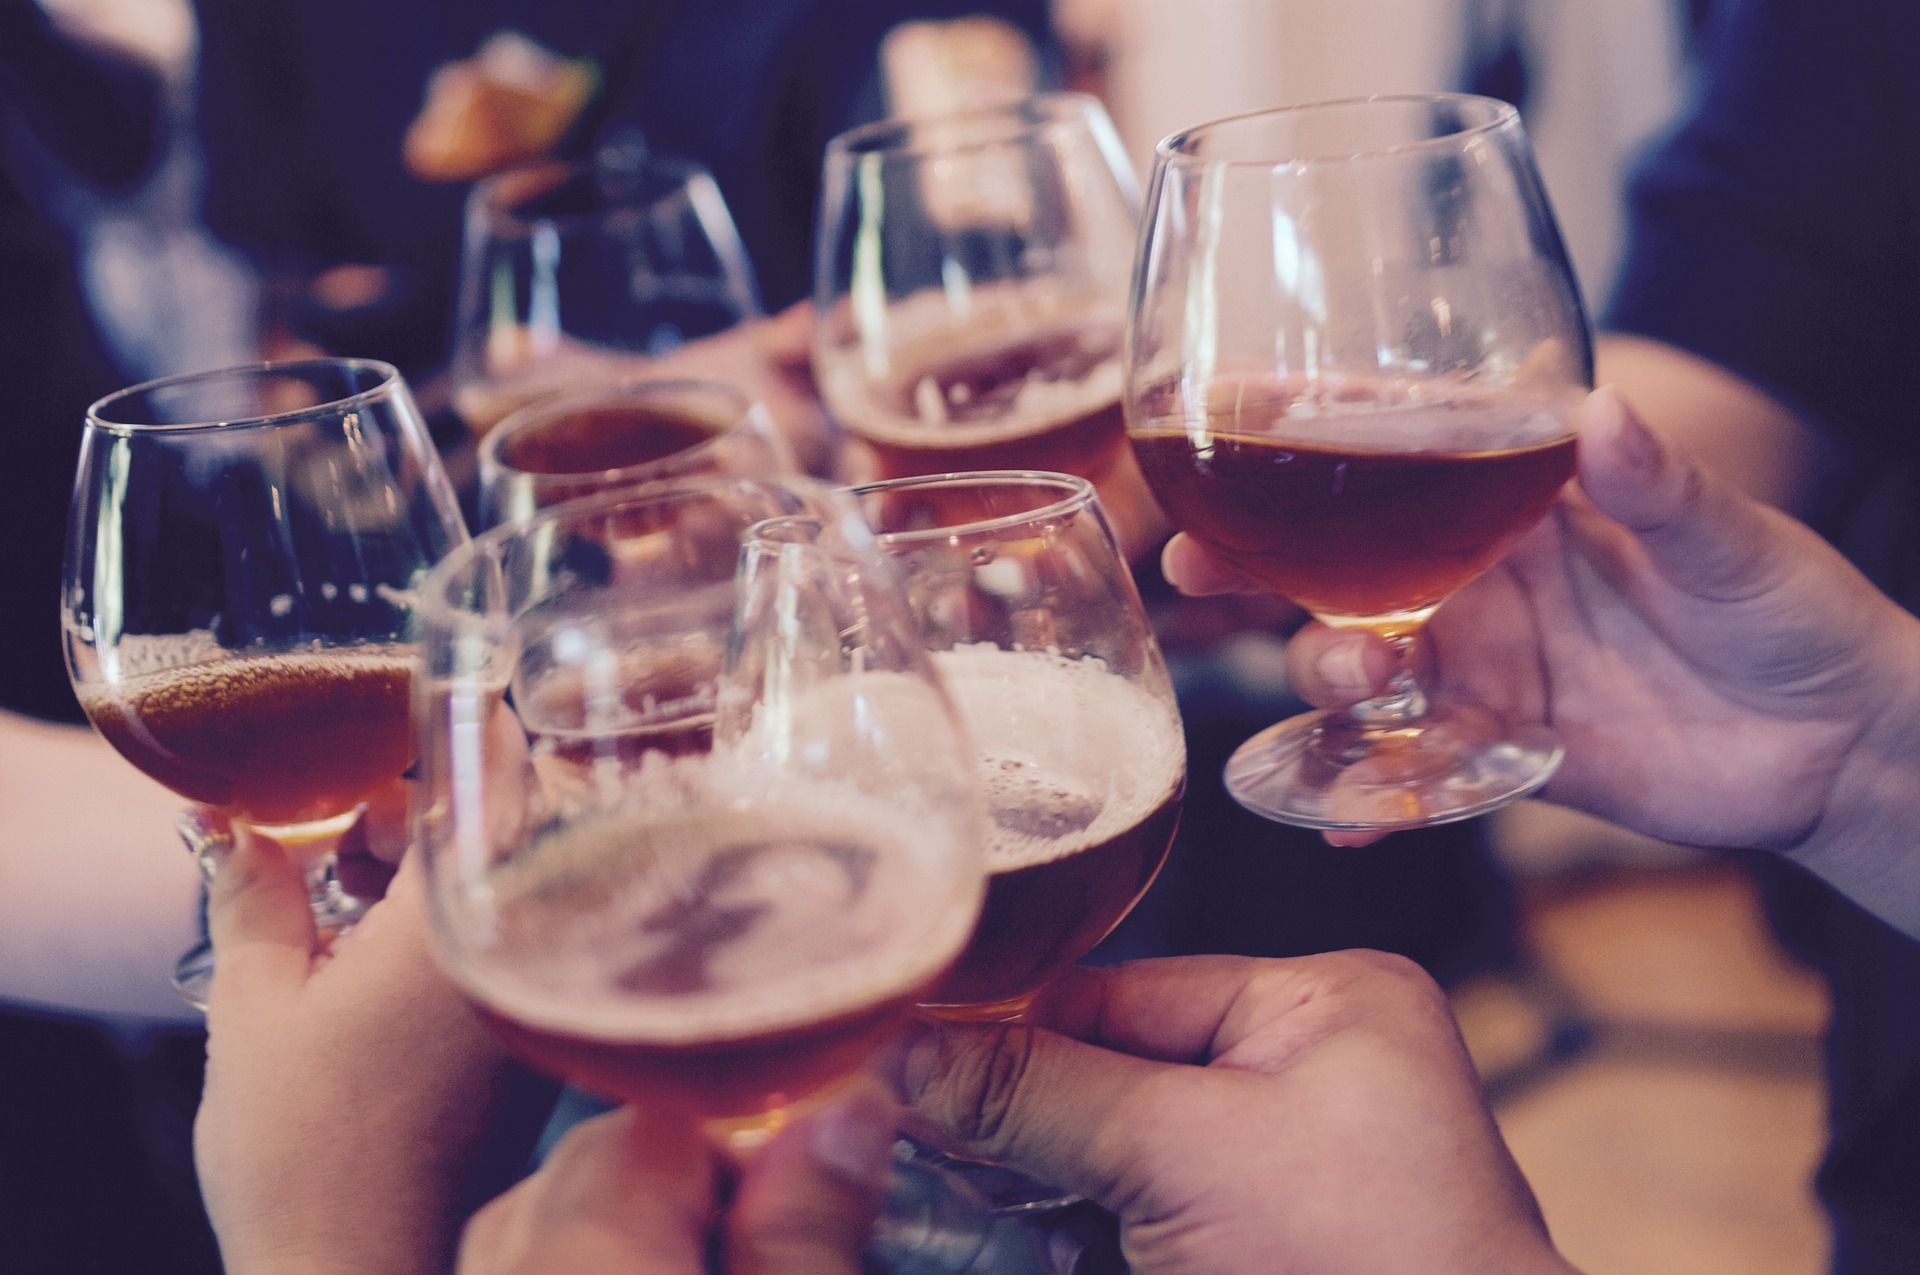 Increase dwell time at your bar and increase profits!